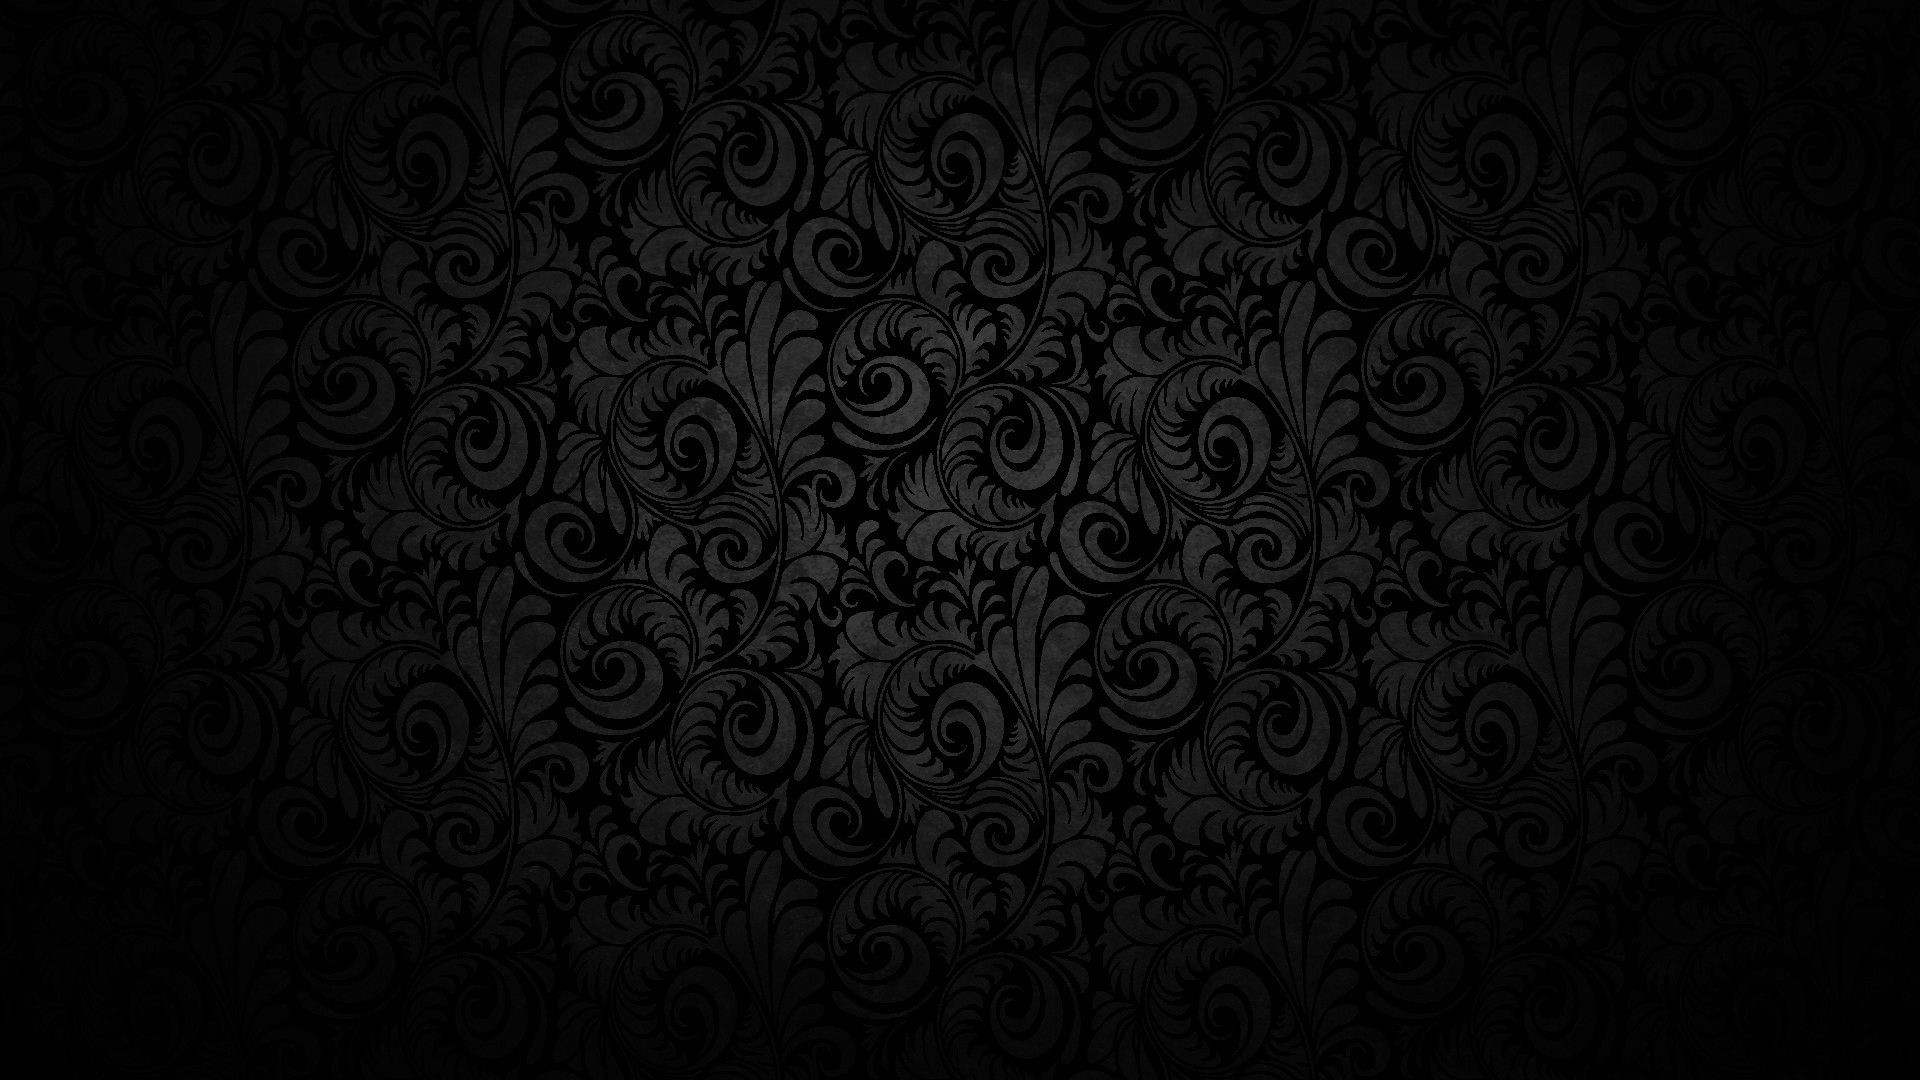 1080p-Wallpapers-of-Abstract-Black-Swirl-Wallpaper-Background –